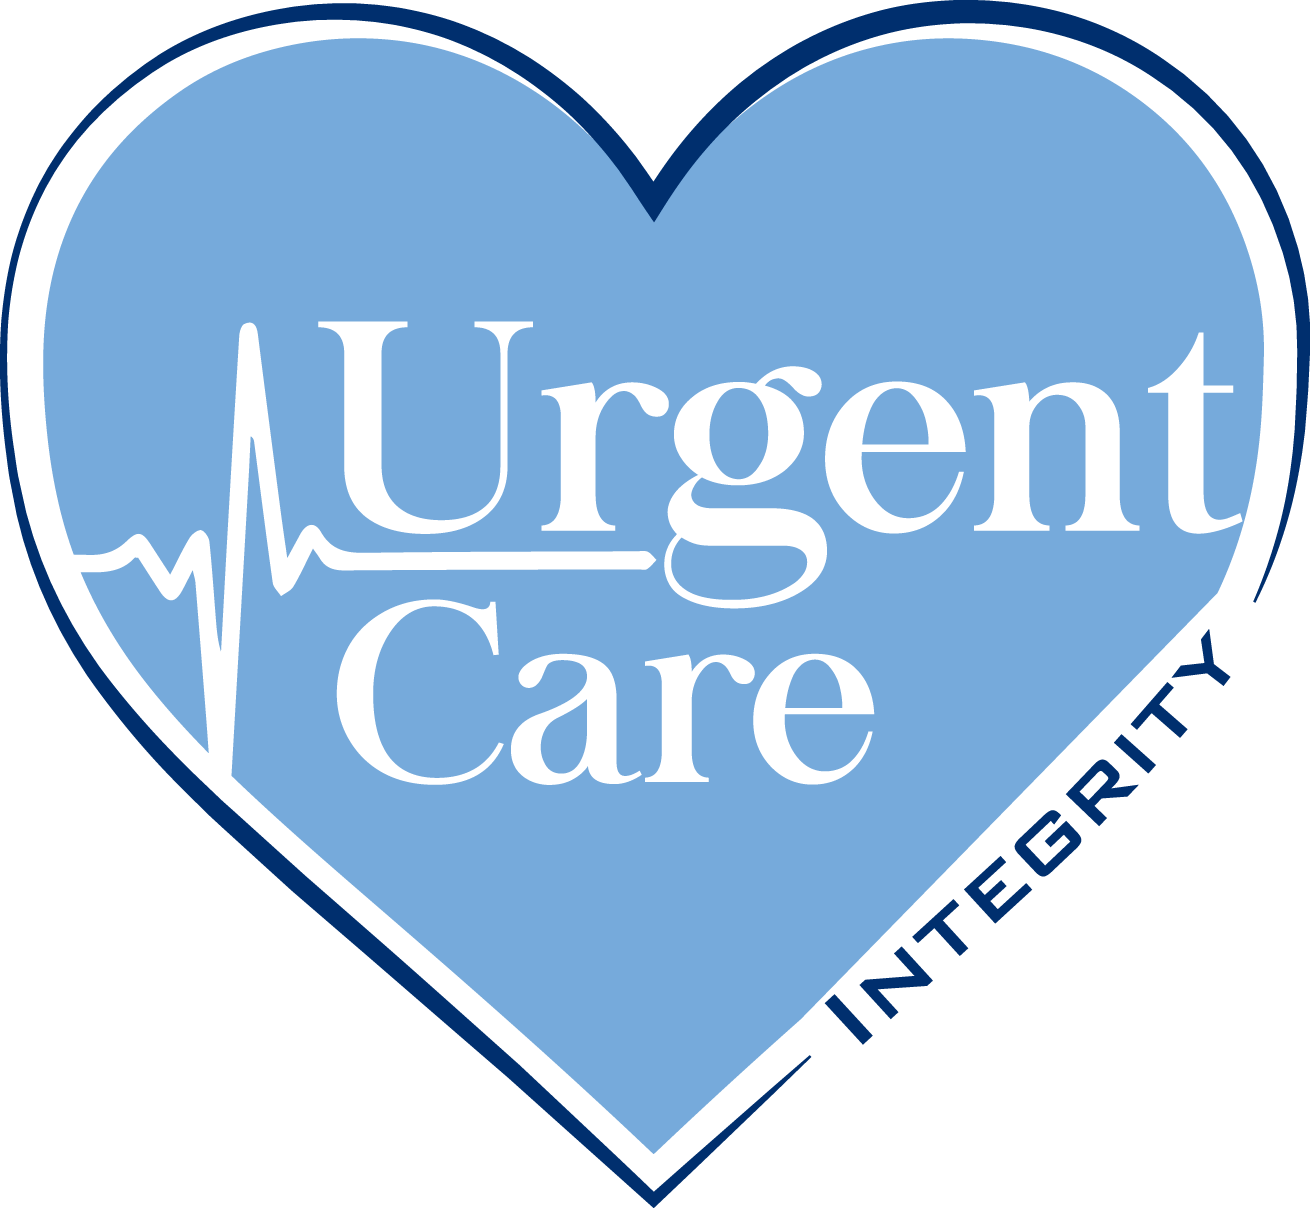 Integrity Urgent Care - Athens Logo